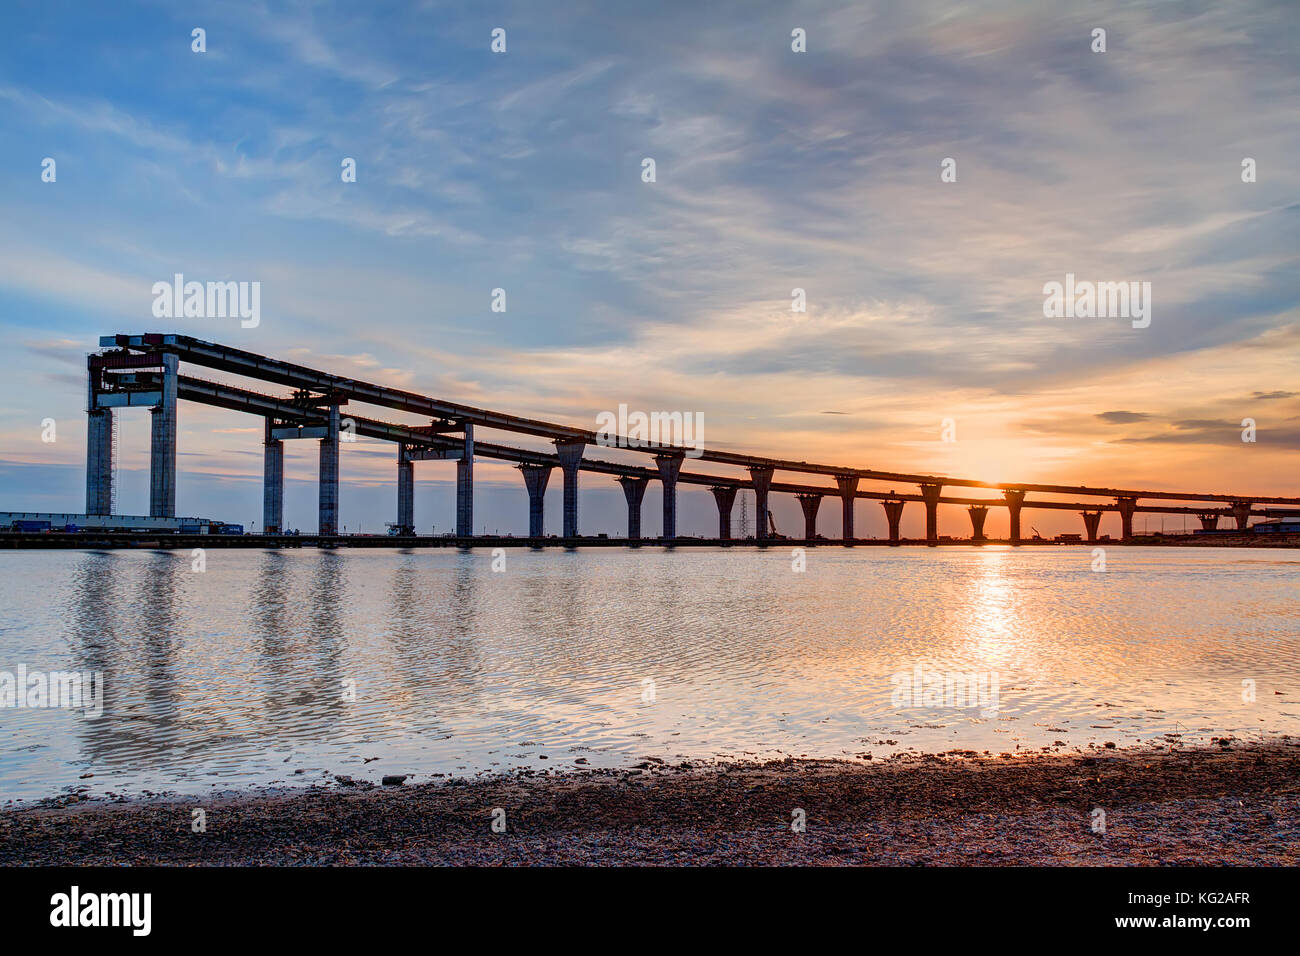 Construction of the Western High-Speed Diameter on the background of beautiful sky at sunset Stock Photo